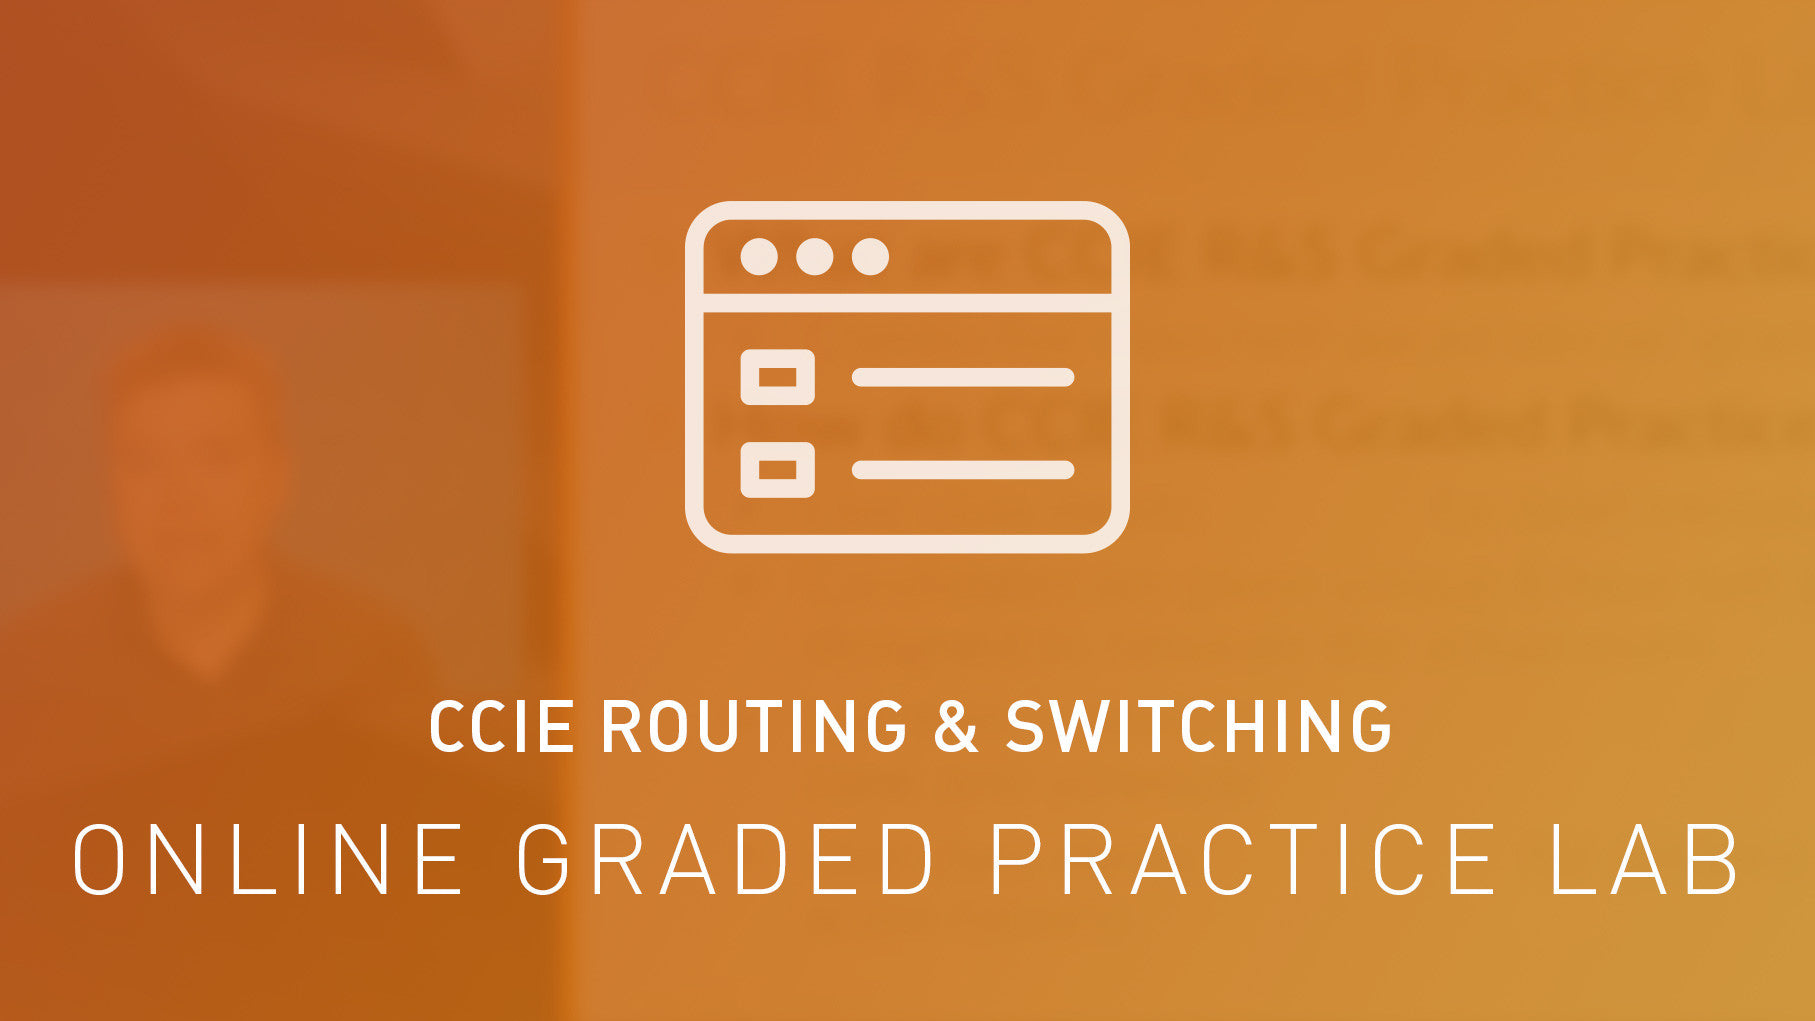 INE-CCIE-Bootcamp-Routing-Switching-Practice-Lab.jpg?v=1488385535